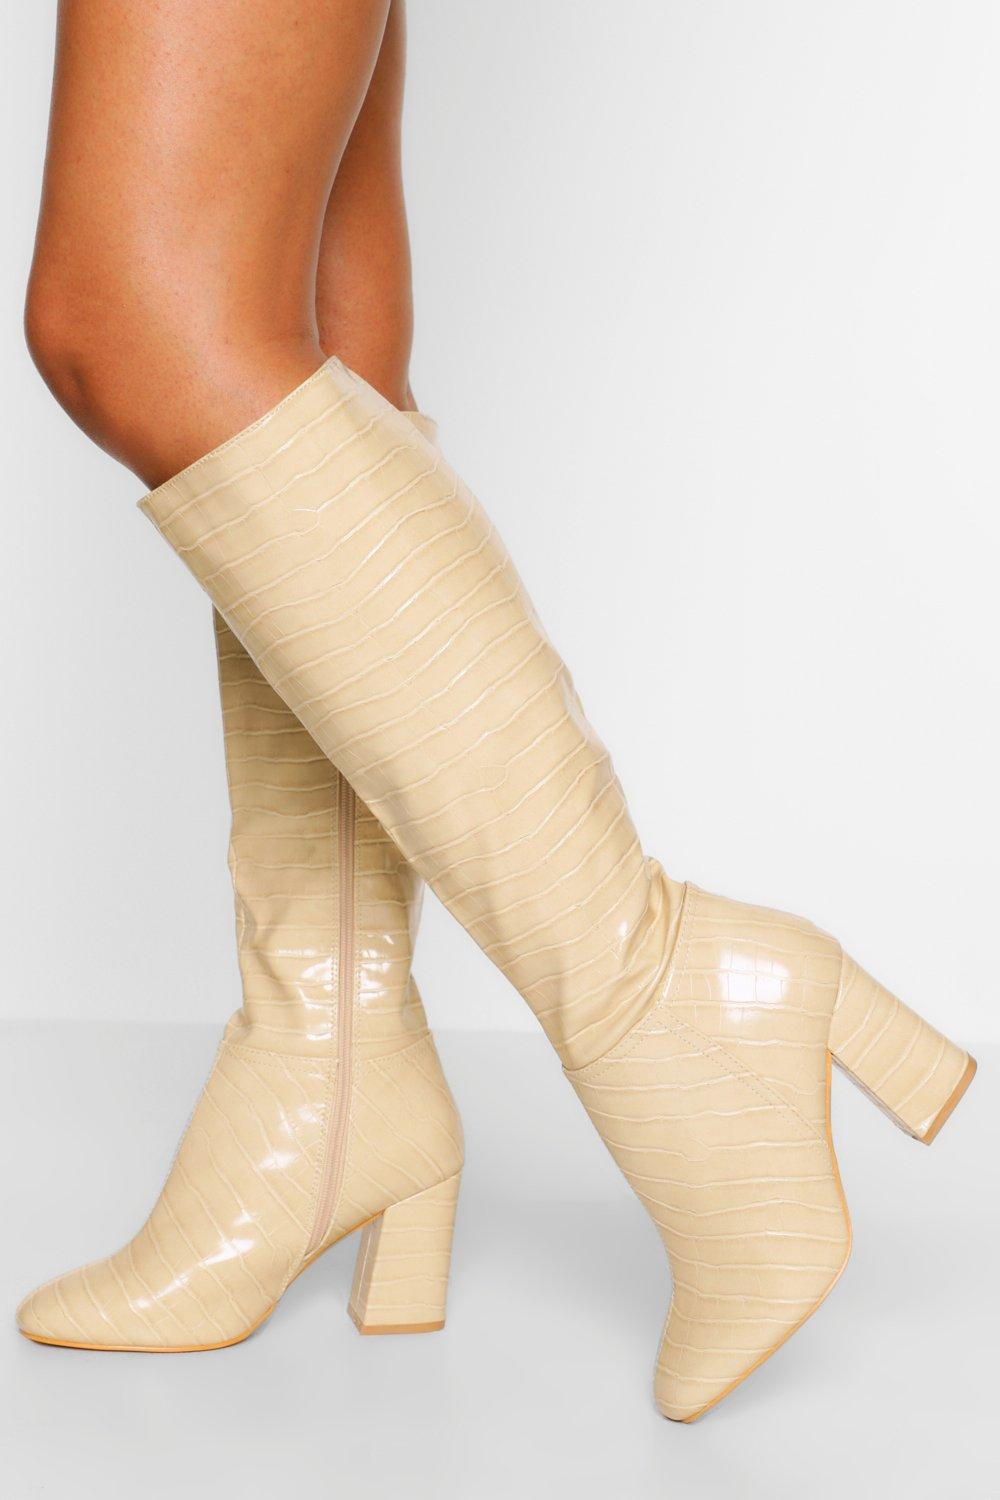 70s Shoes, Platforms, Boots, Heels | 1970s Shoes Womens Wide Fit Block Heel Knee Boot - White - 10 $80.00 AT vintagedancer.com